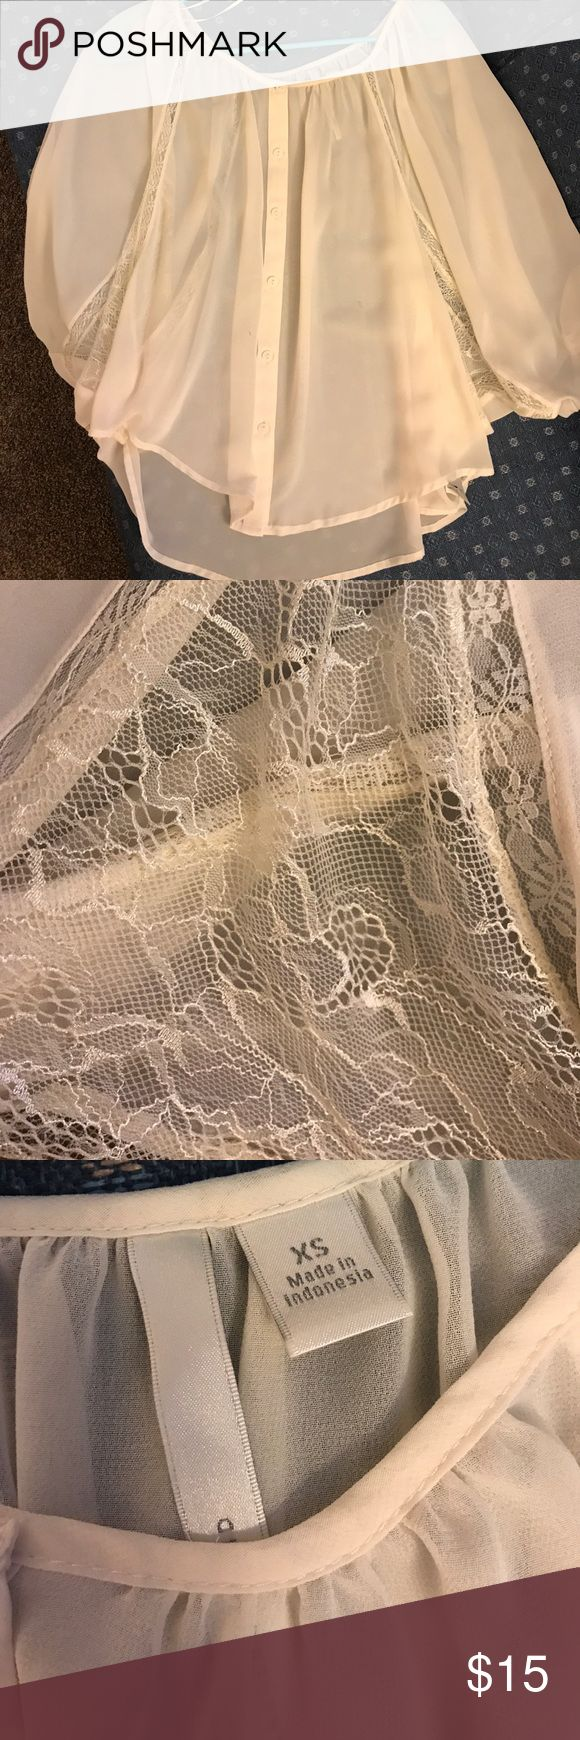 Lauren Conrad Cream Flowy Top This is a Top that will be stylish for ages. It has gorgeous Lace detail and it's about 3/4 sleeves. It's very nice and flowy and beautiful. There are a few black marks on it but they can probably be washed out, otherwise it's in great condition! Comes from a smoke free home! LC Lauren Conrad Tops Blouses